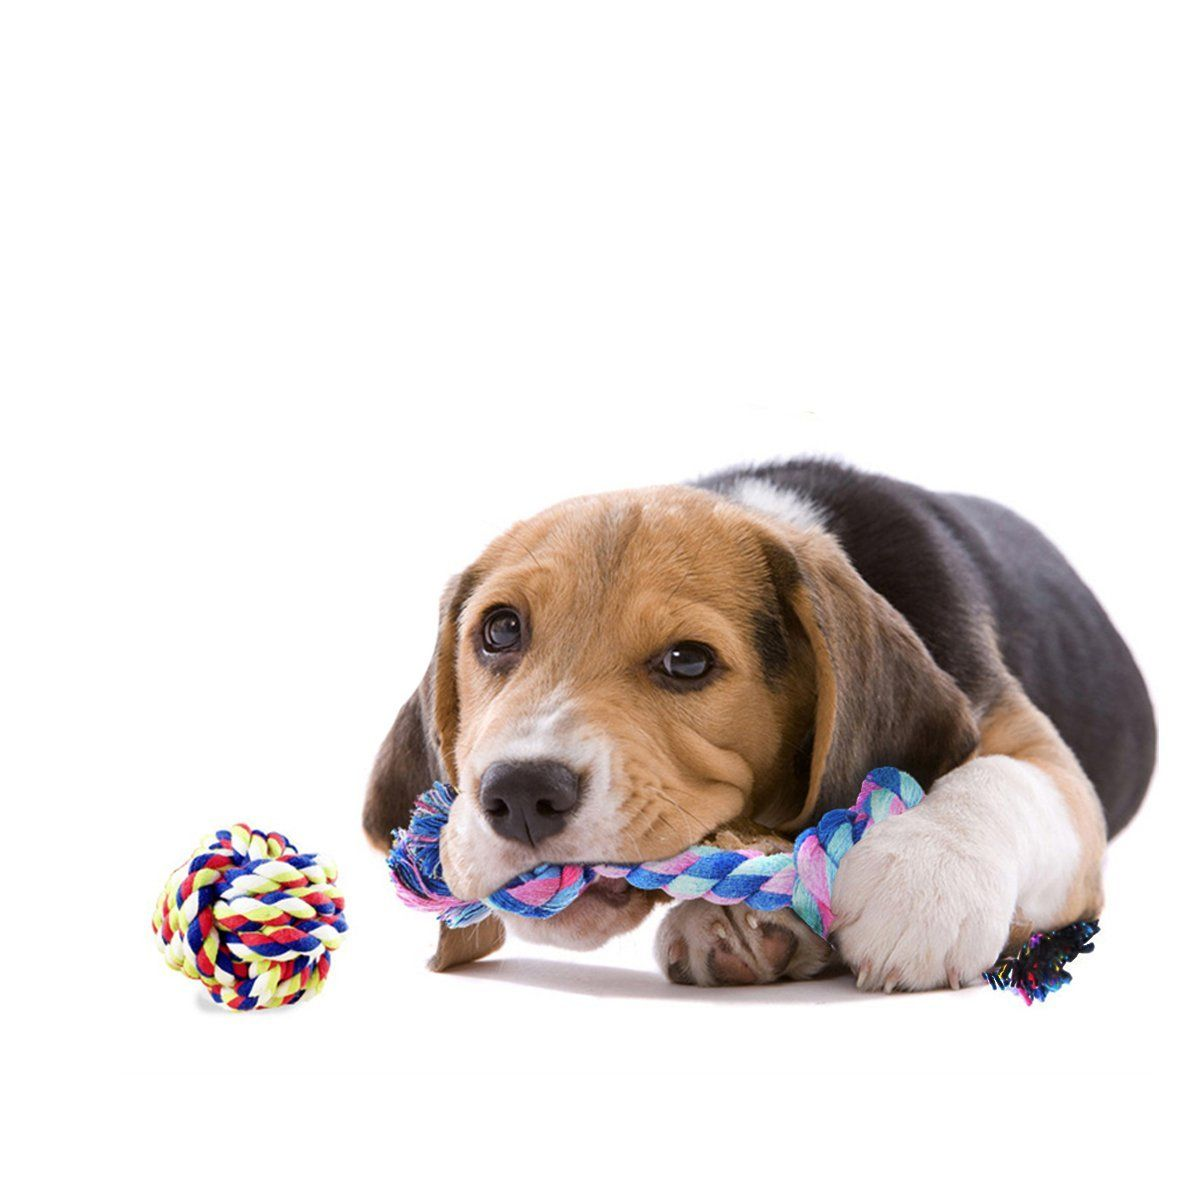 Pet Supplies Dog Rope Toys Dog Teething Toys Best Chew Toys For Teething Puppy 12 Pcs Gift Set Amazon Com Dog Toys Dog Teething Toys Chew Toy